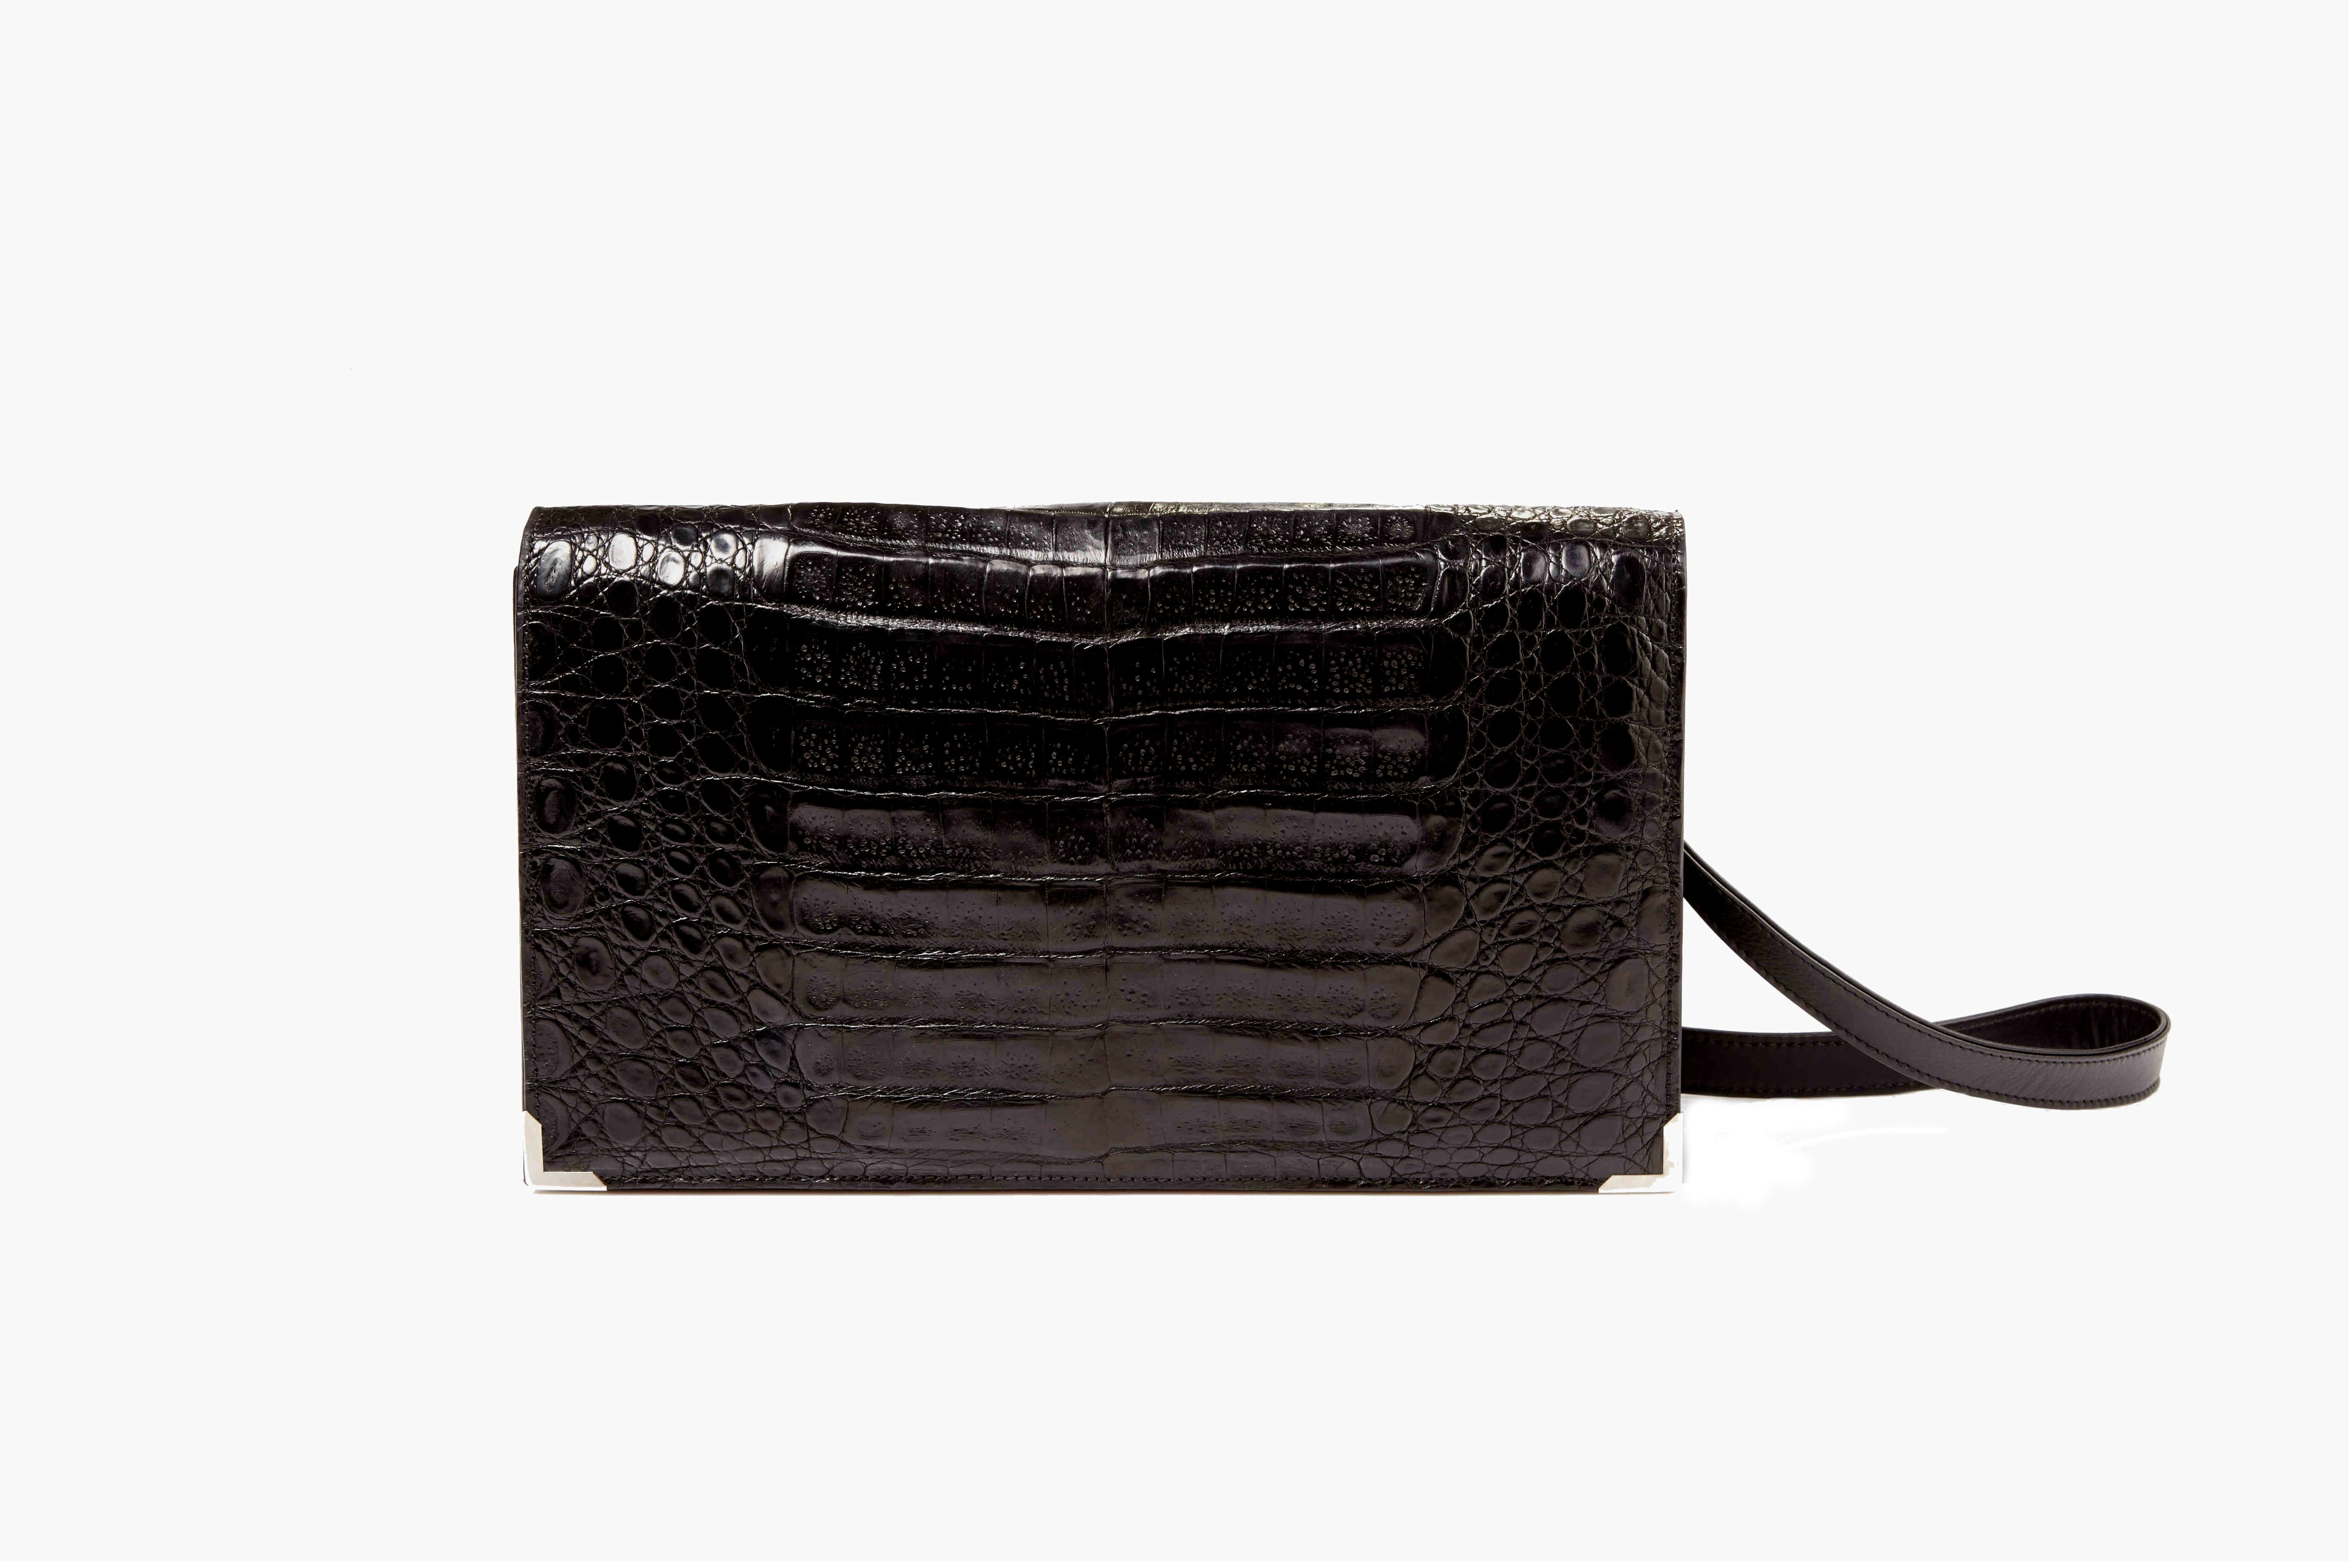 L Aristocrate Shoulder Bag Made With Real Crocodile Leather